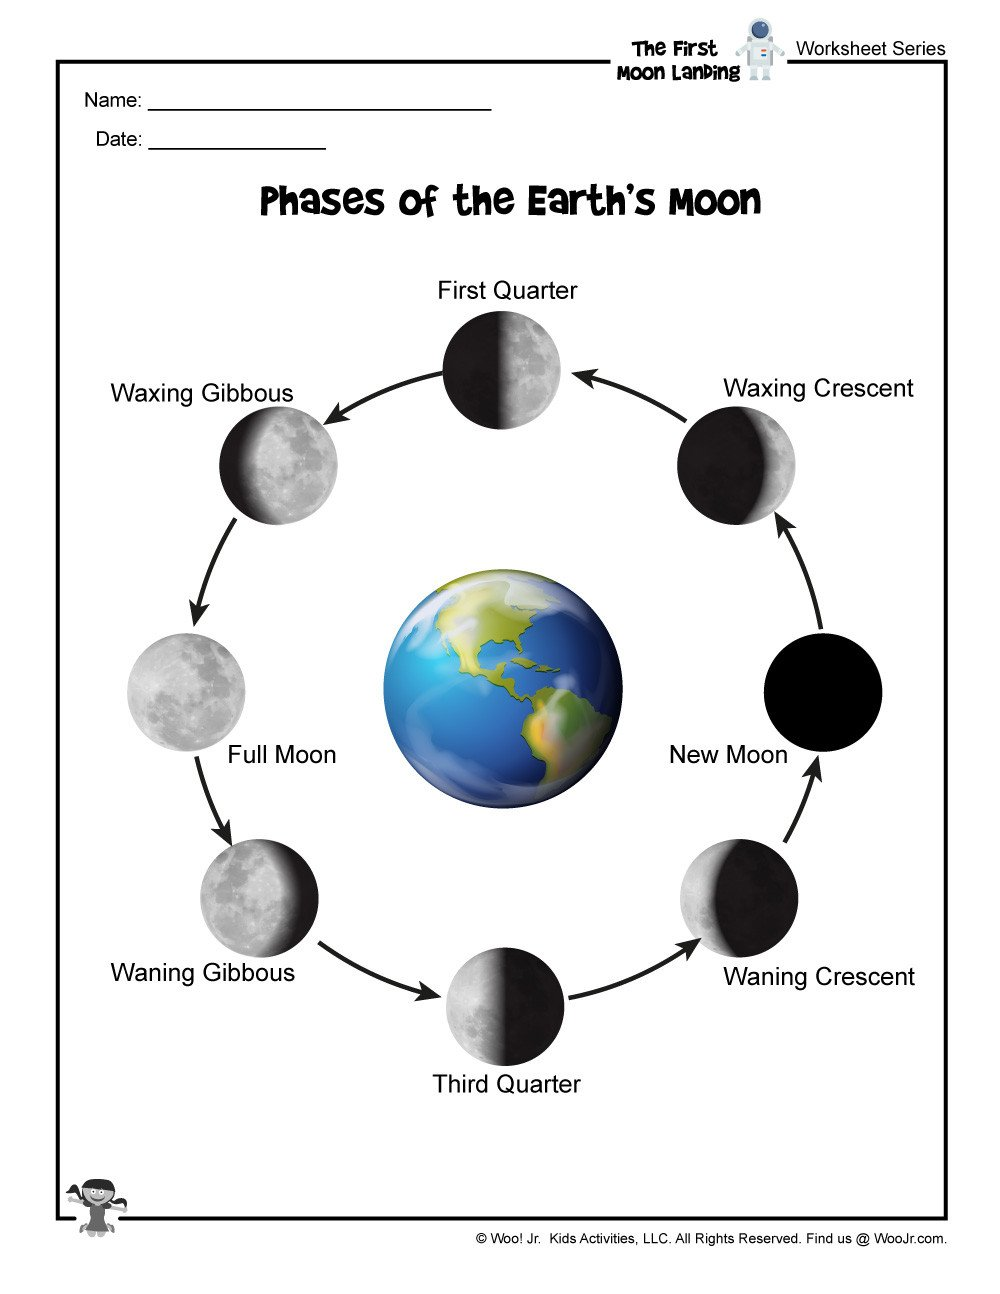 Moon Phases Study Guide Worksheet